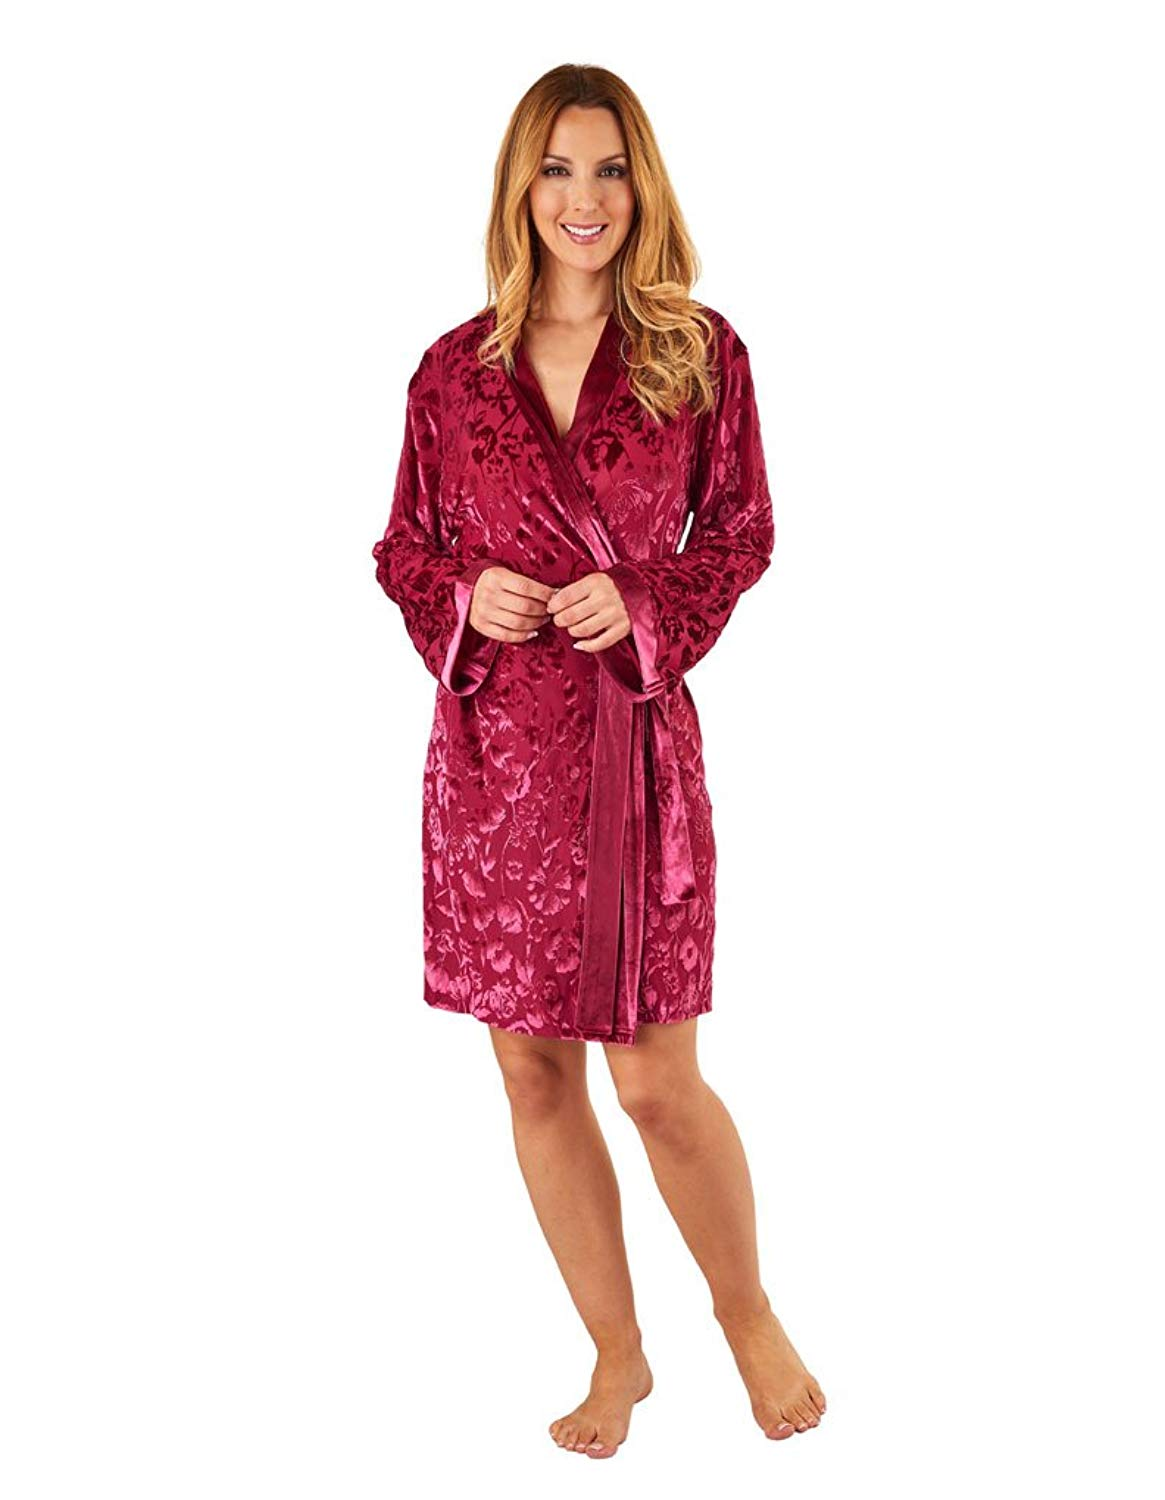 093ad6ee7a63 Get Quotations · Slenderella GL8713 Women s Raspberry Red Floral Long  Sleeve Dressing Gown